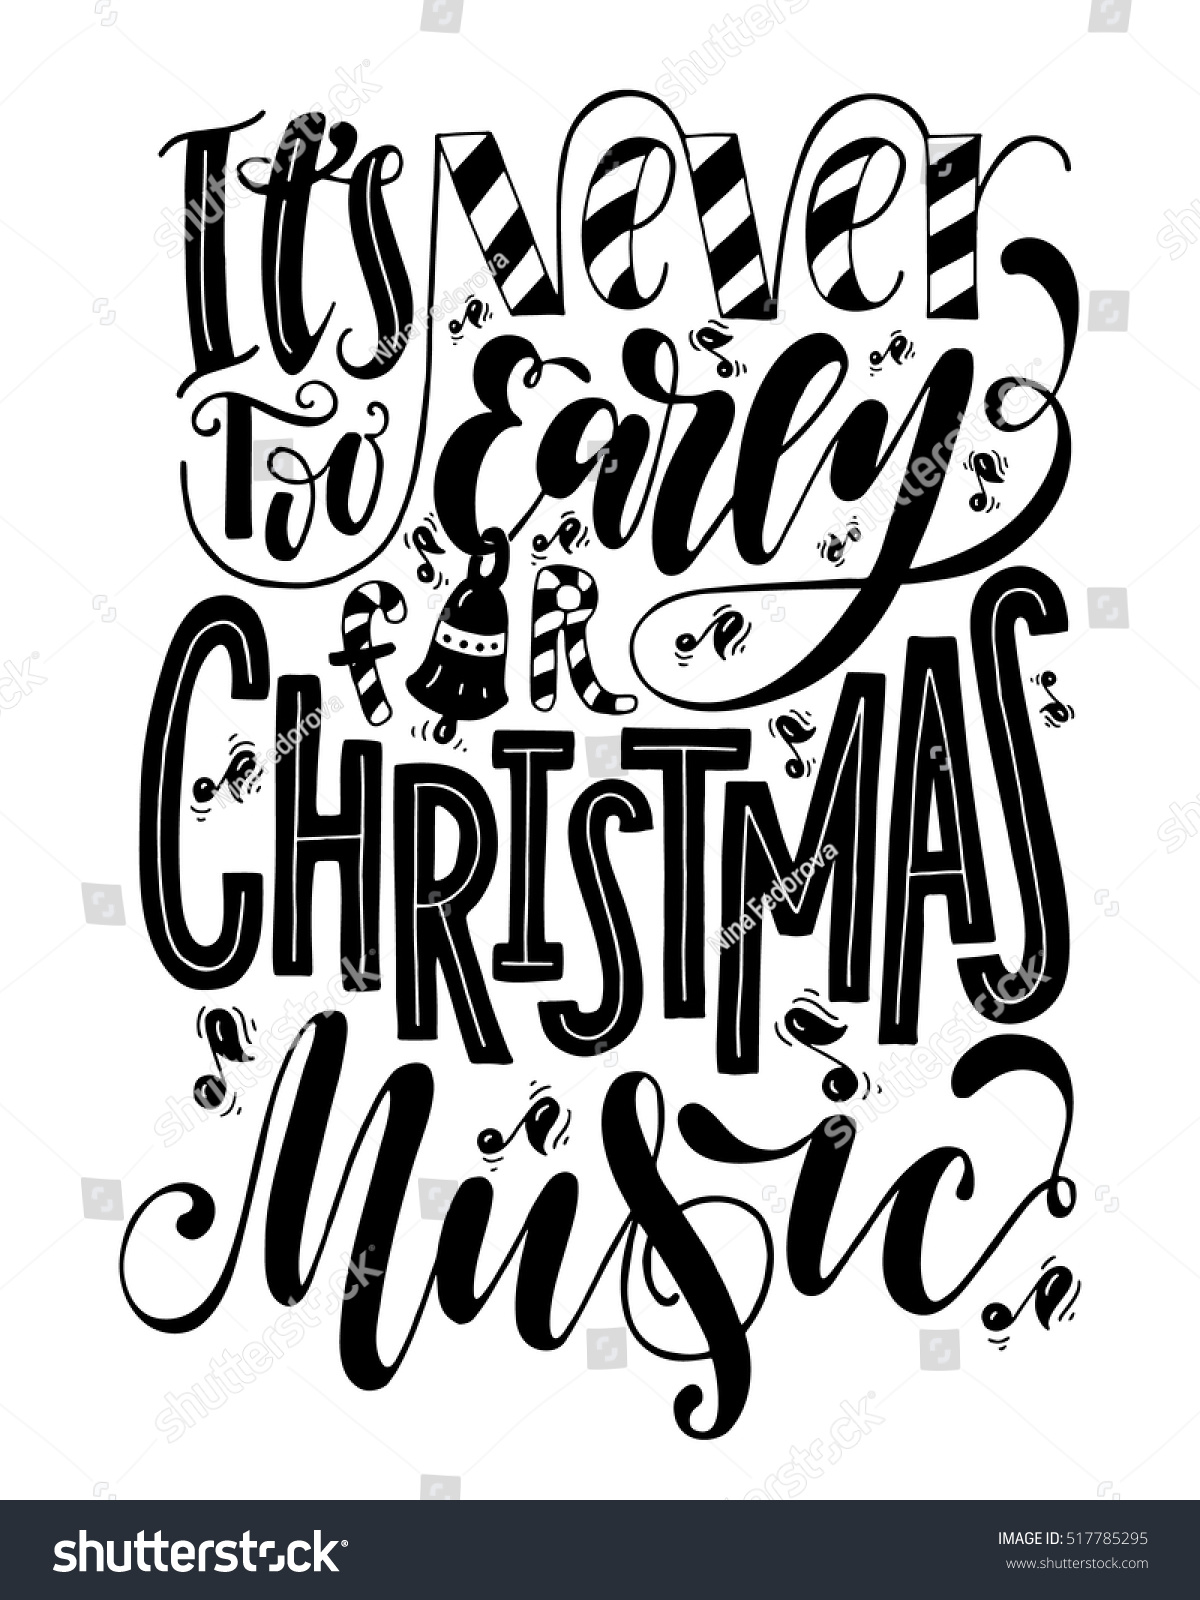 Never Early Christmas Music Inspirational Quote Hand Drawn Stock ...